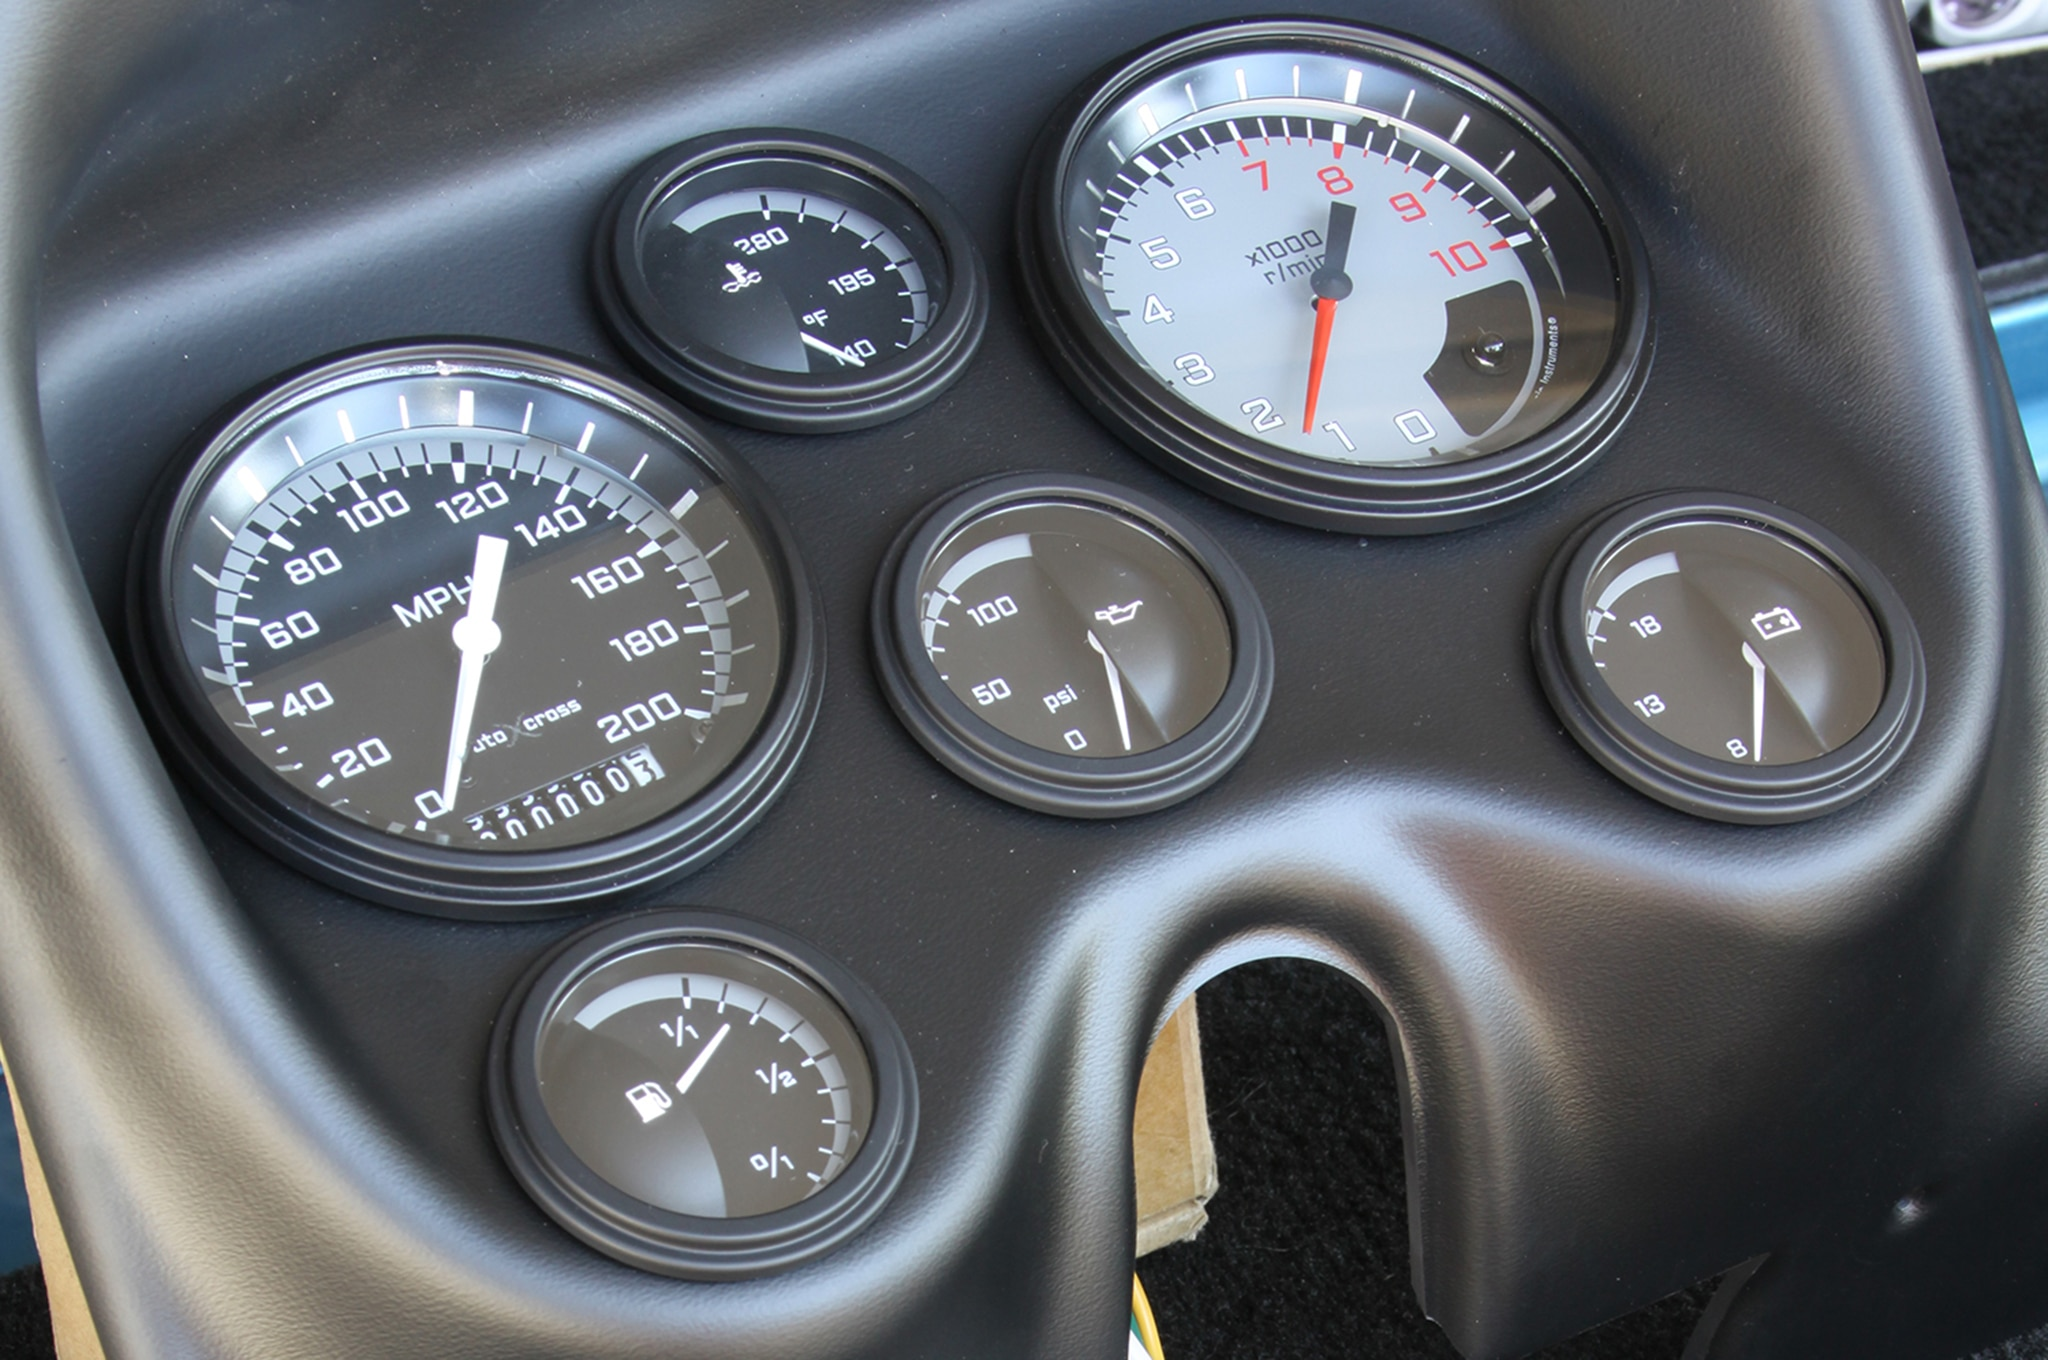 1967 Camaro Fuel Gauge Wiring Diagram The Right Way To Wire Up Gauges For Your Classic Chevy